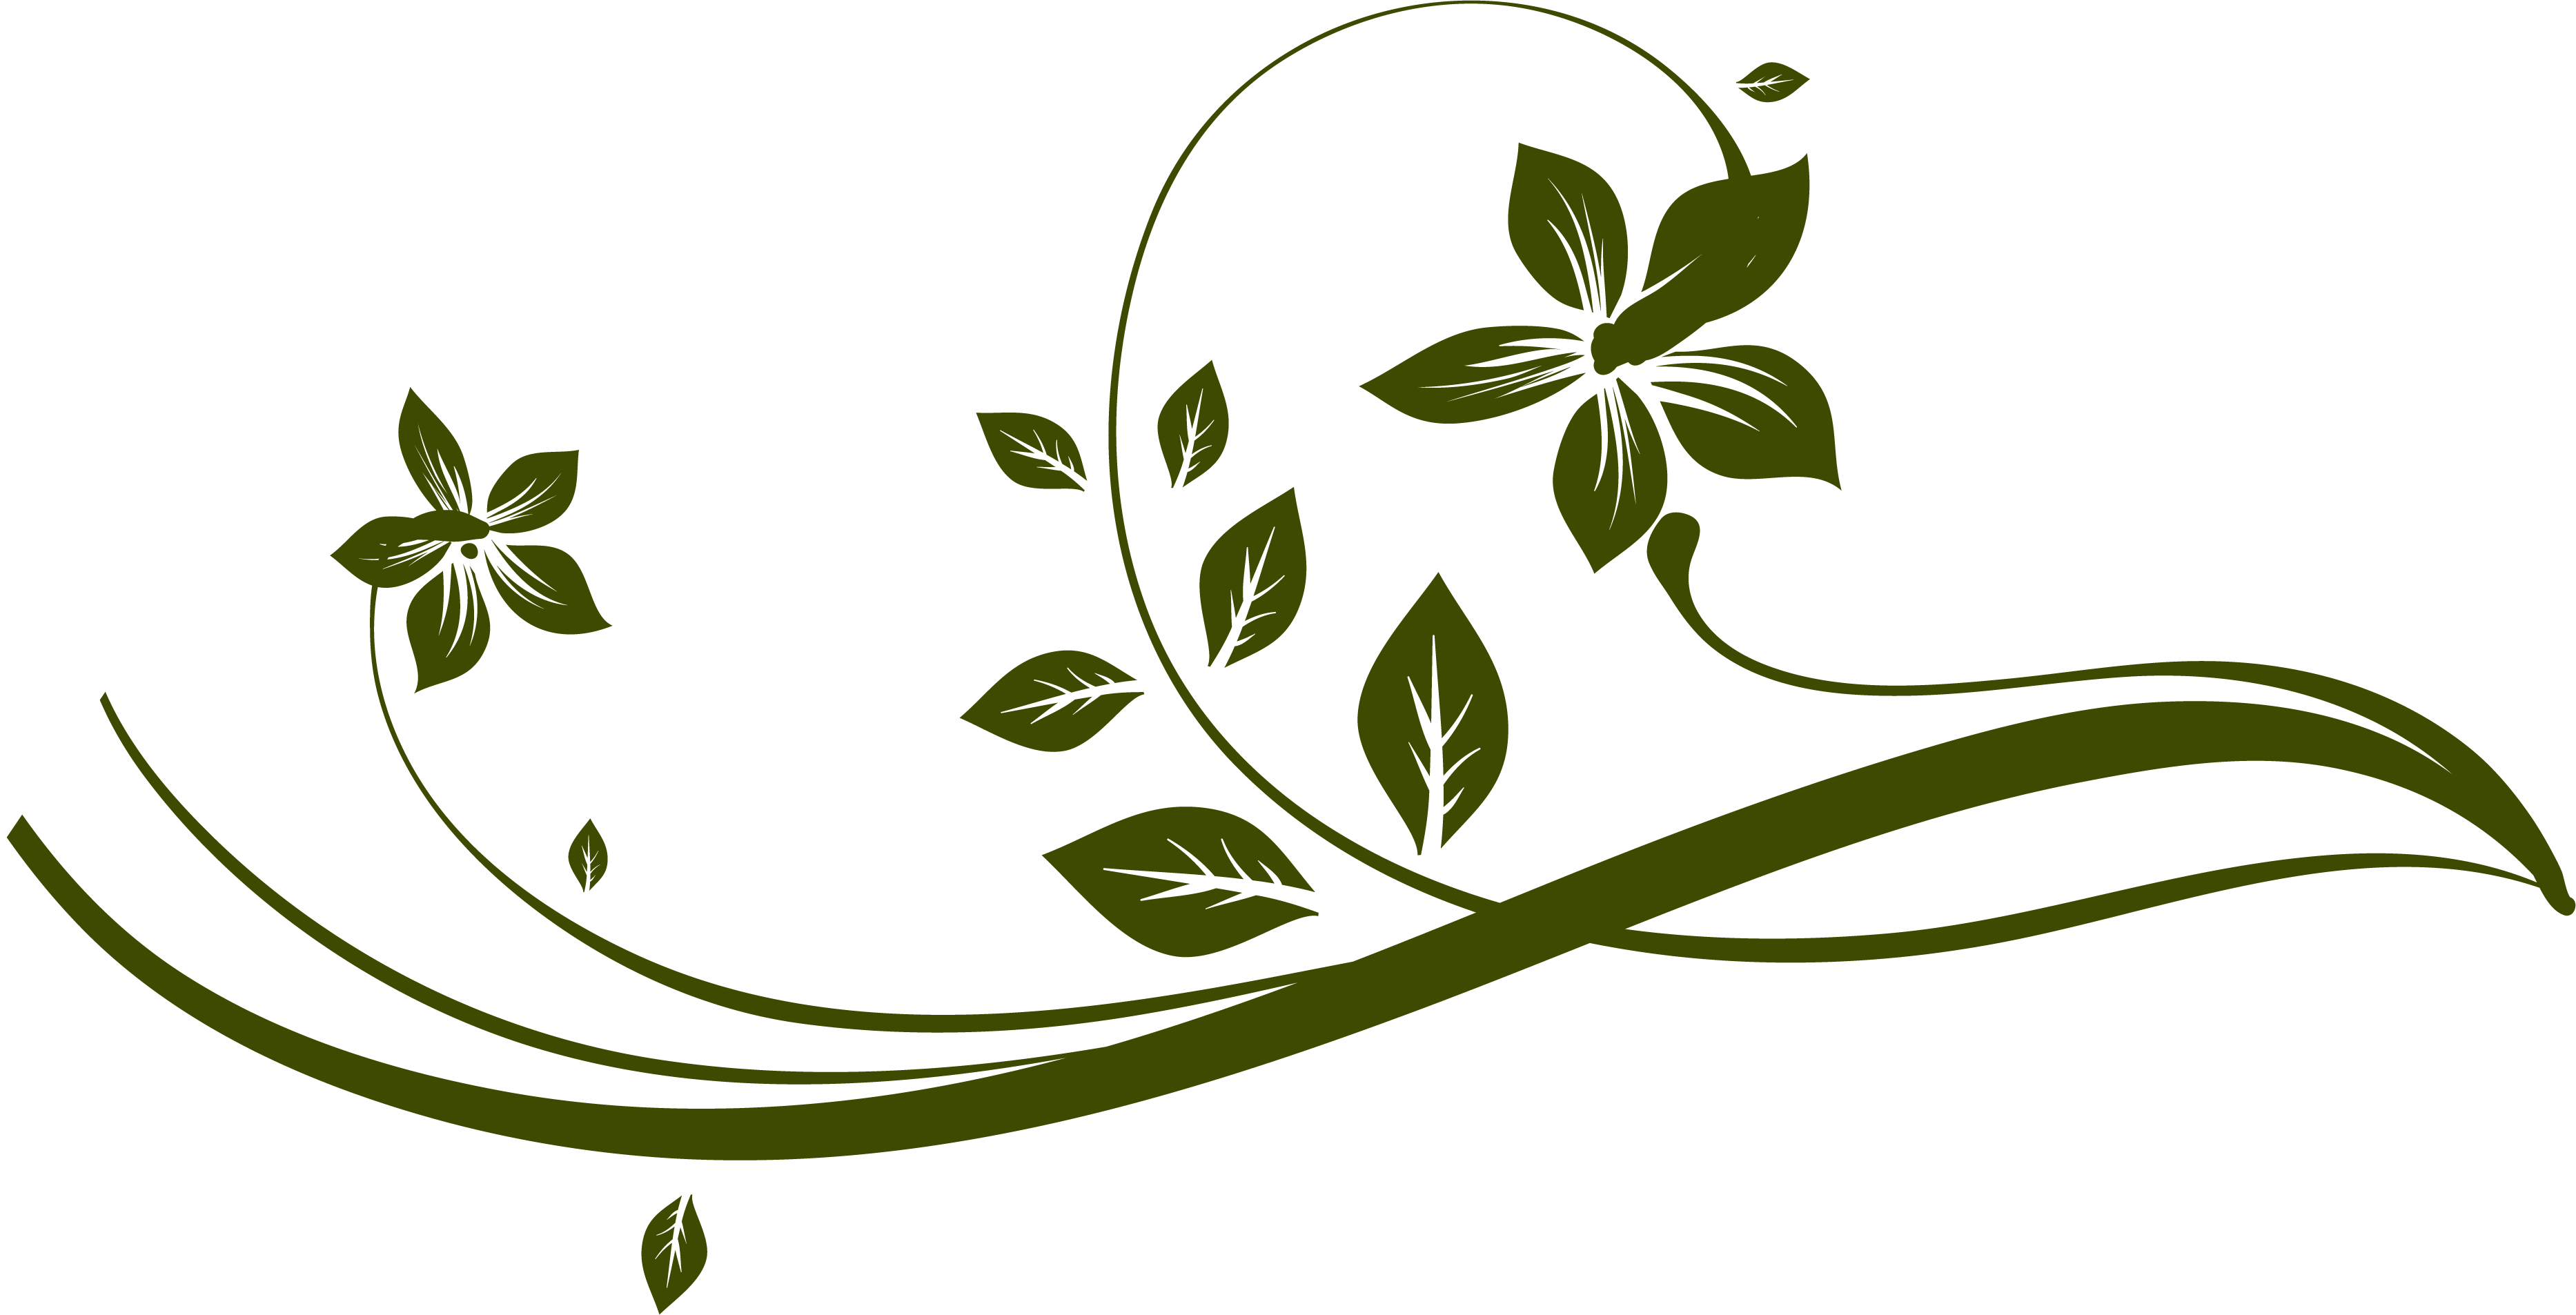 Leaf flourish png. Index of skin frontend